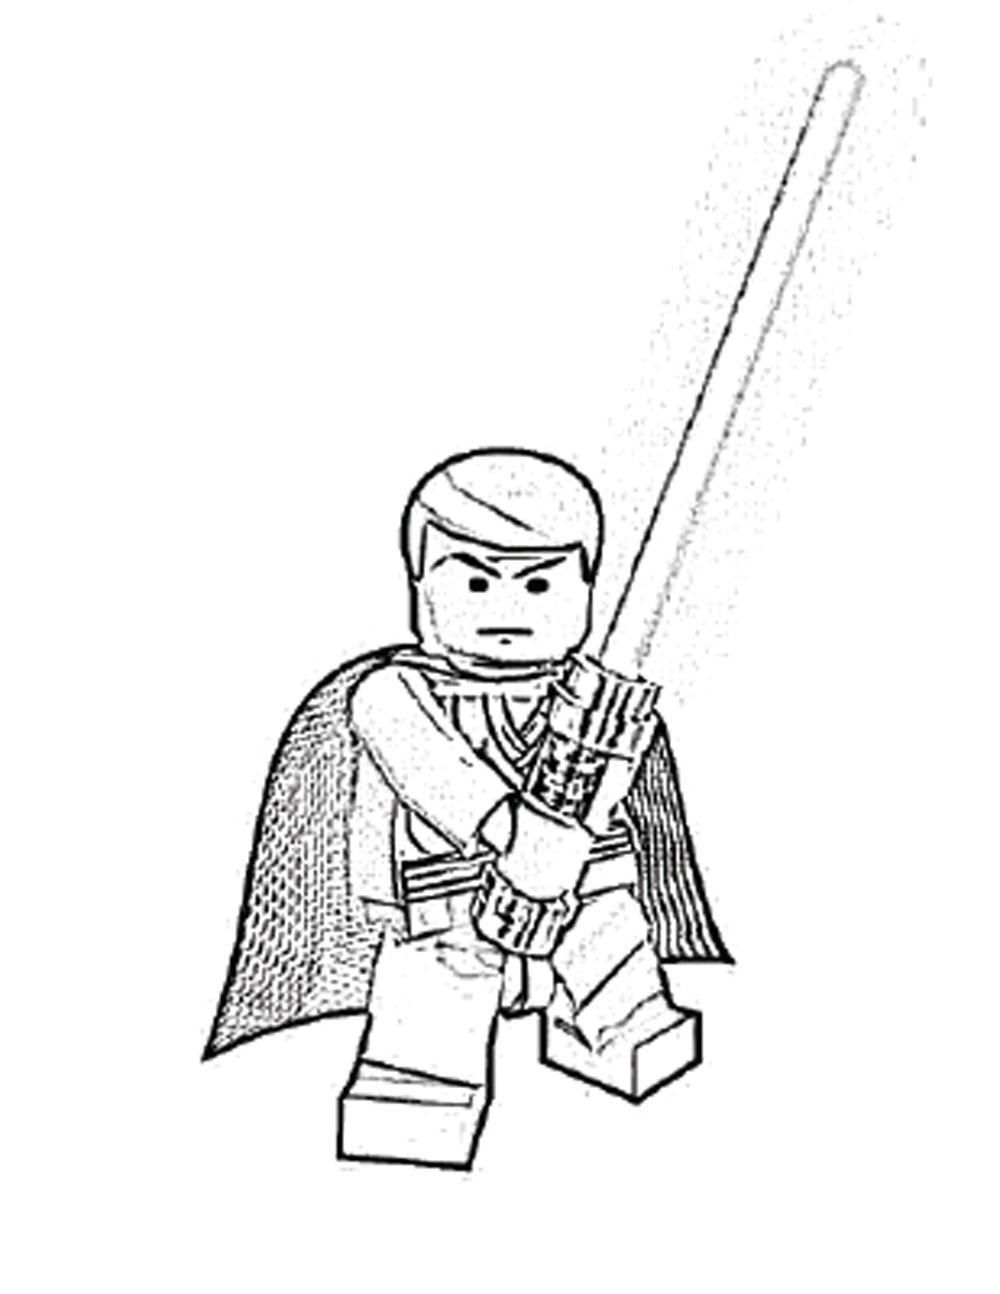 Lego Luke Skywalker Coloring Pages